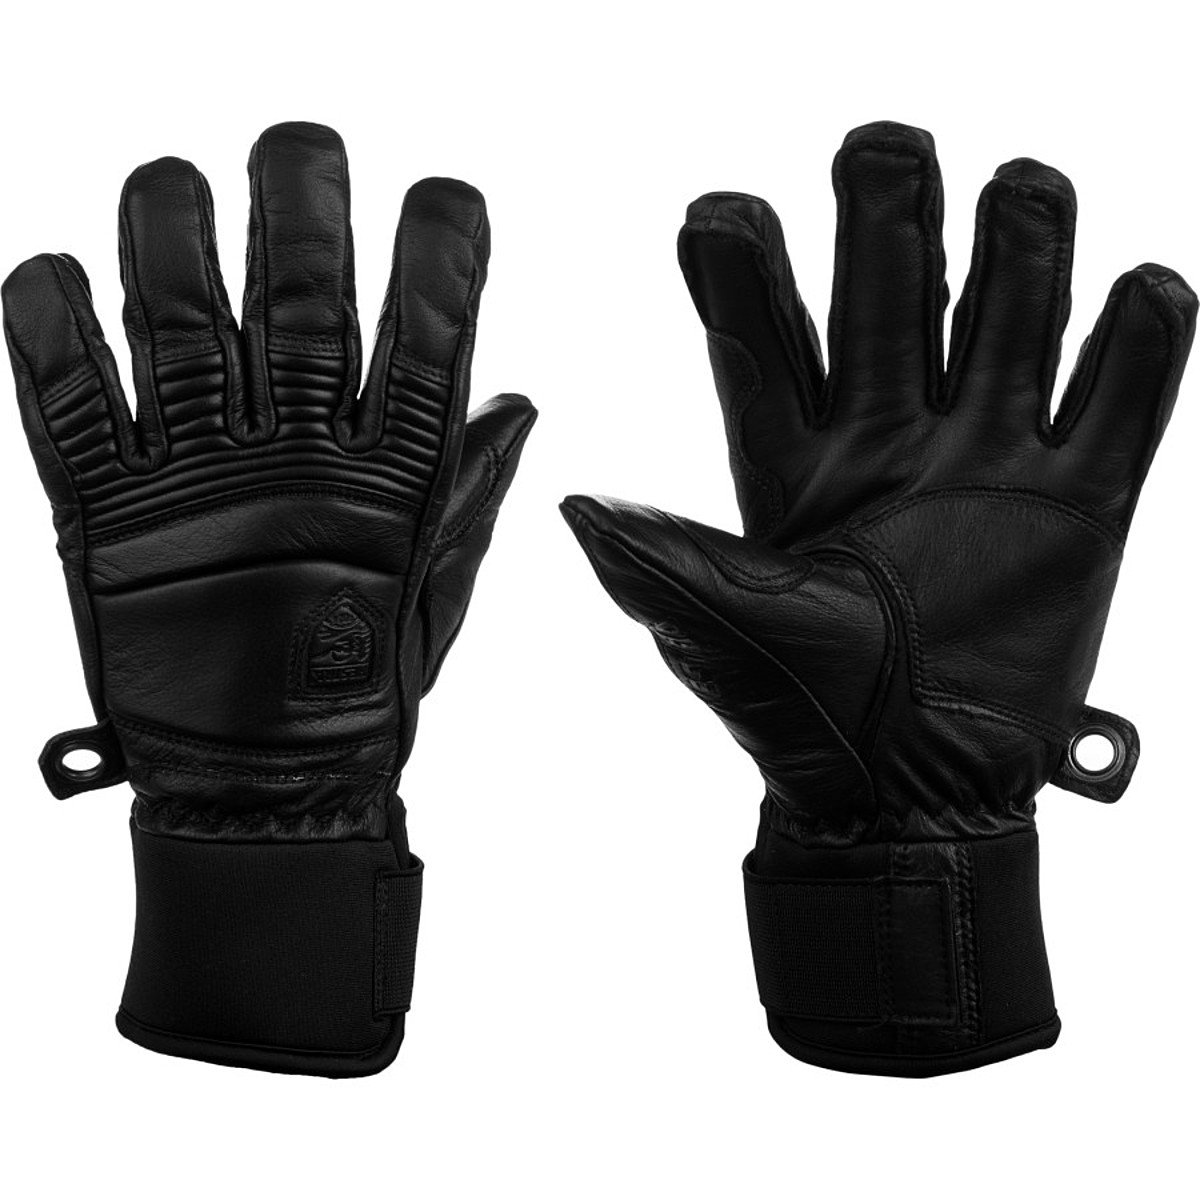 Hestra Fall Line Glove, Black, 9